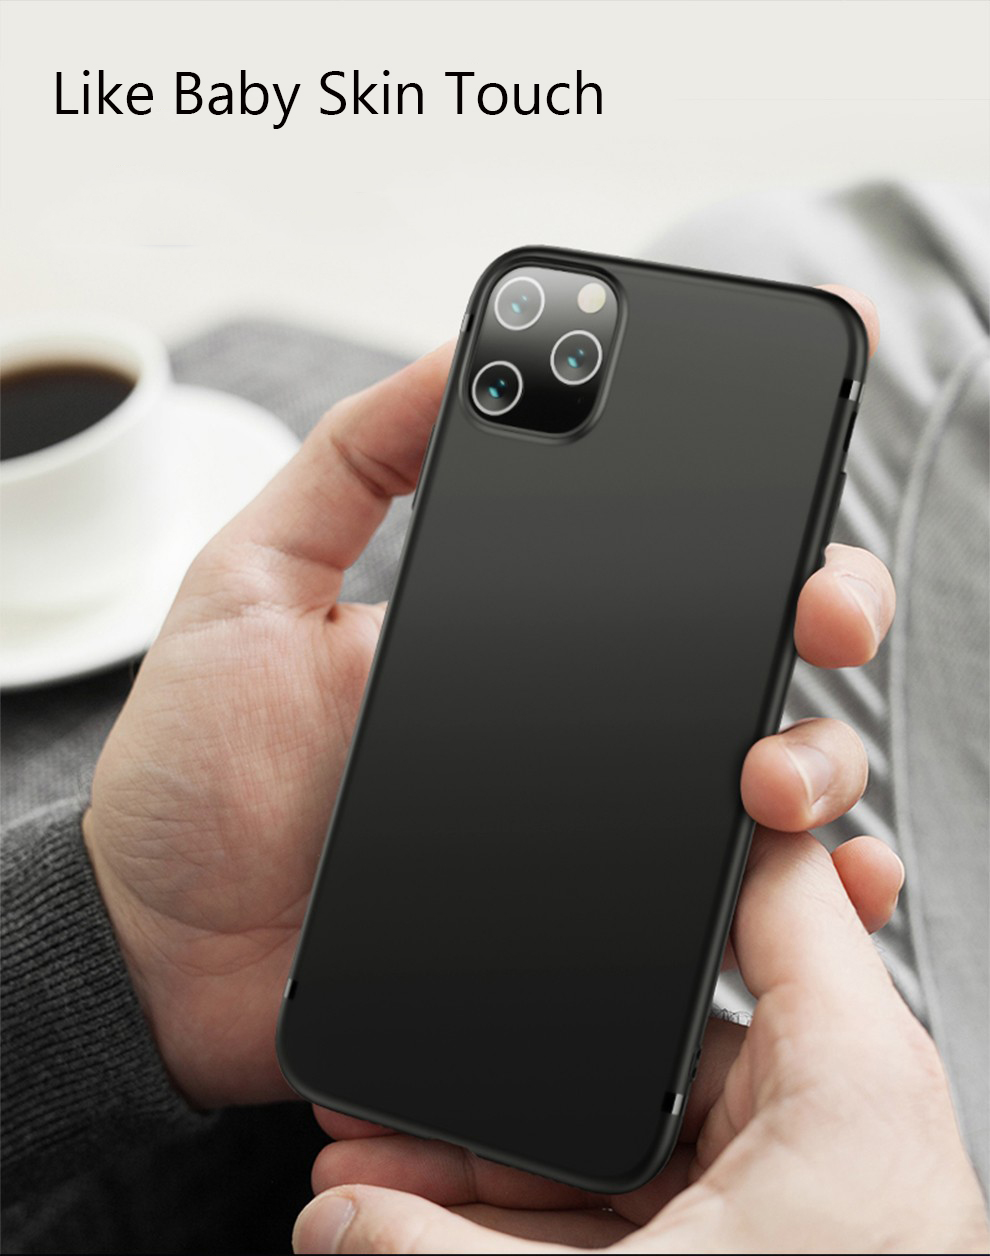 Lainergie Soft TPU Silicone Case for iPhone 11/11 Pro/11 Pro Max 11